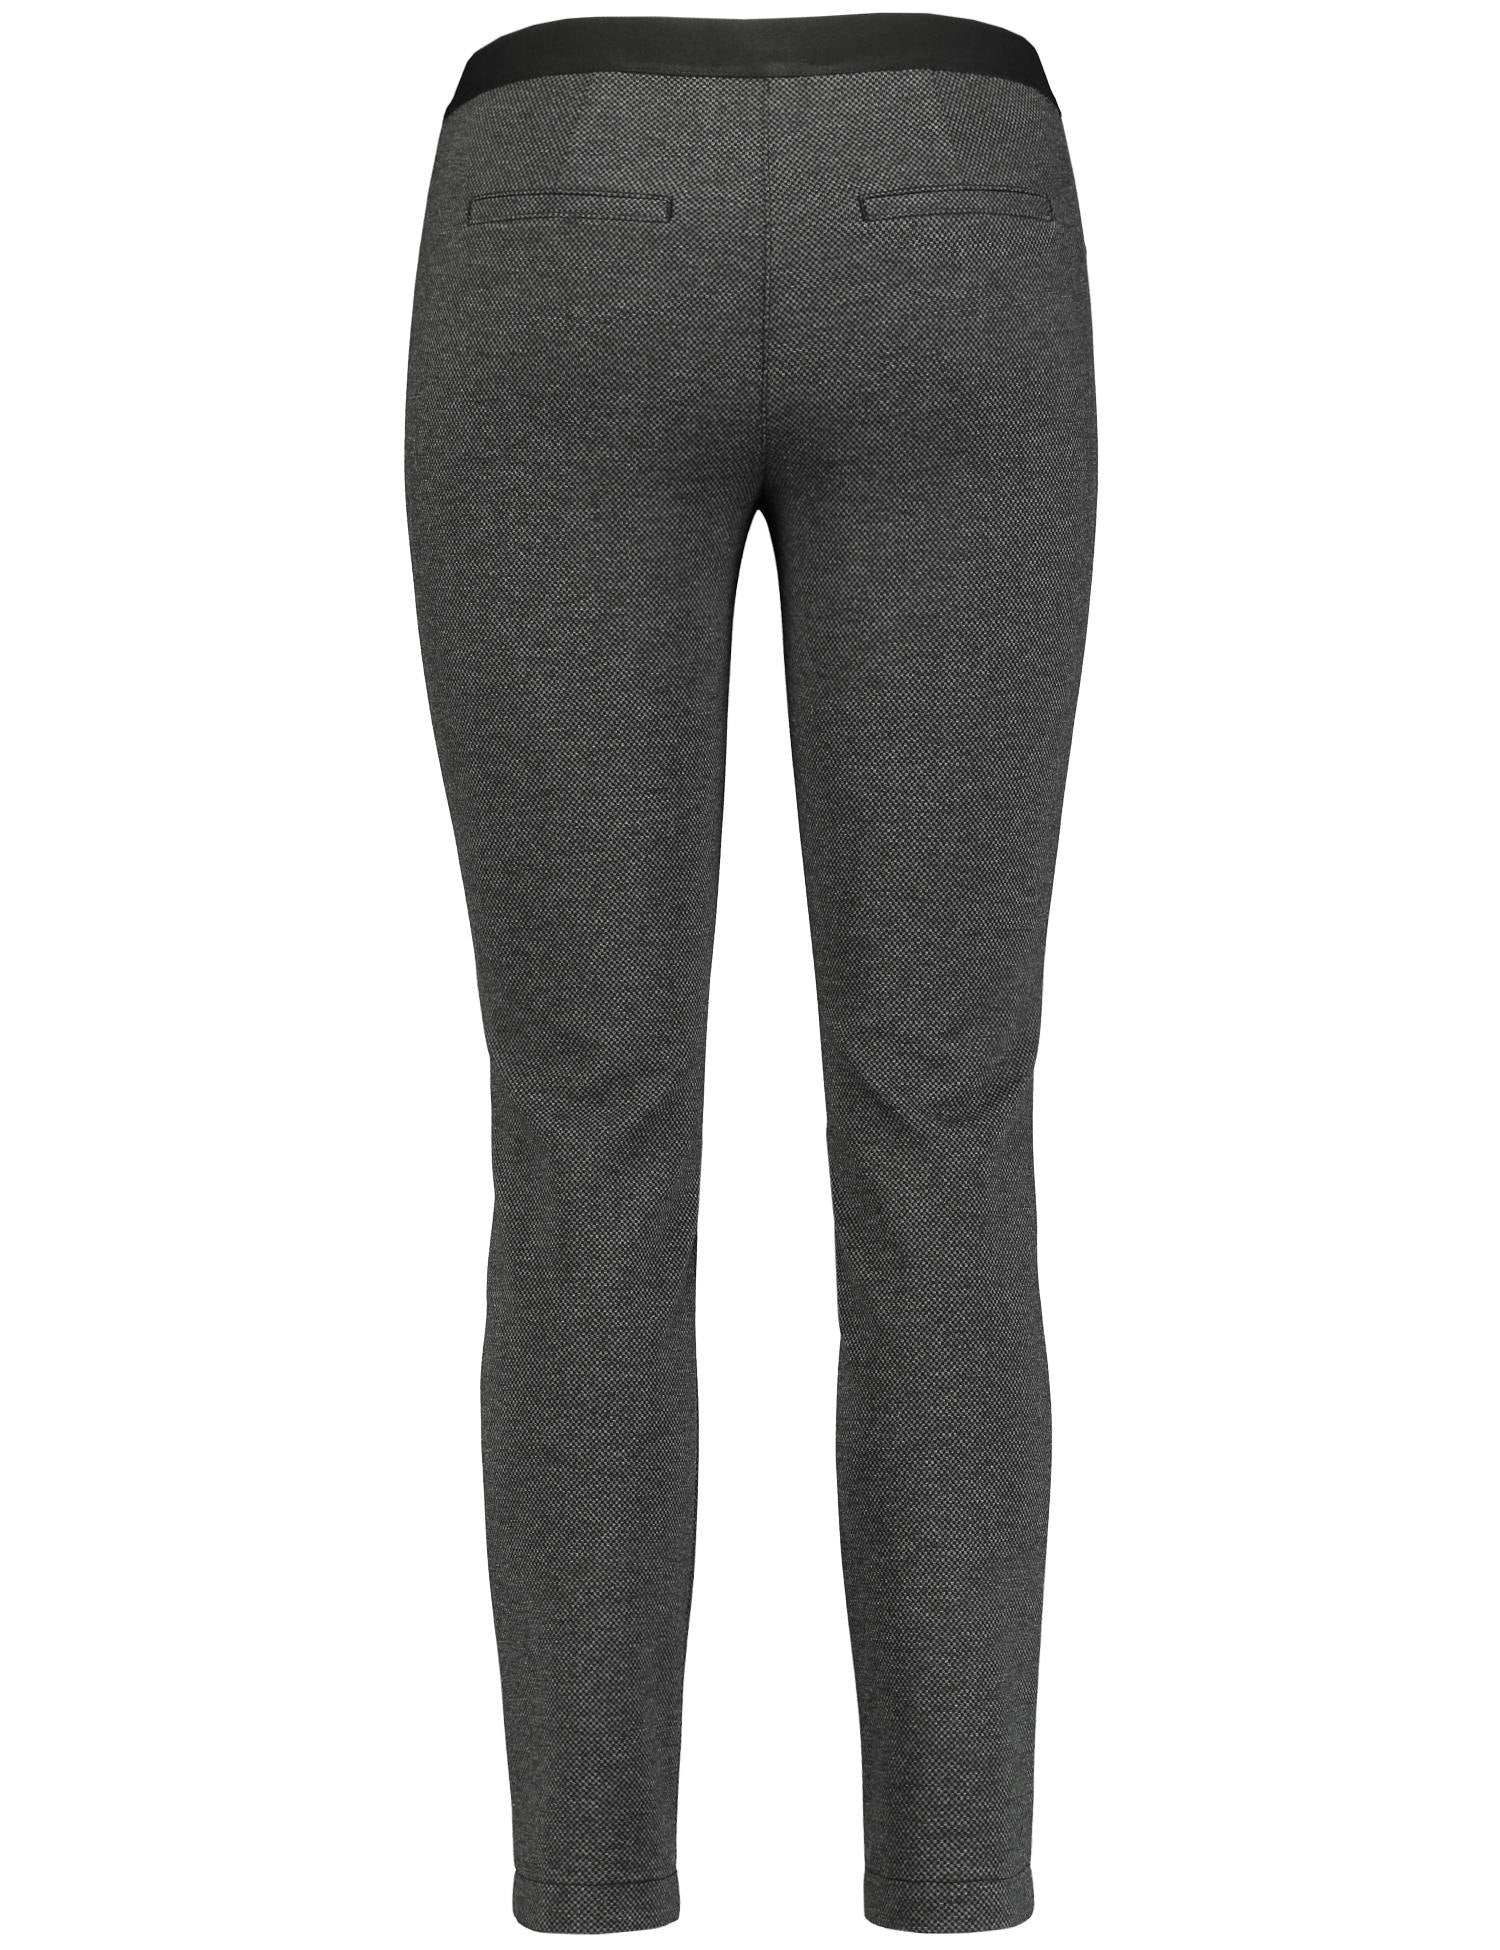 Two-Tone Texture Trousers by Gerry Weber at Jophiel